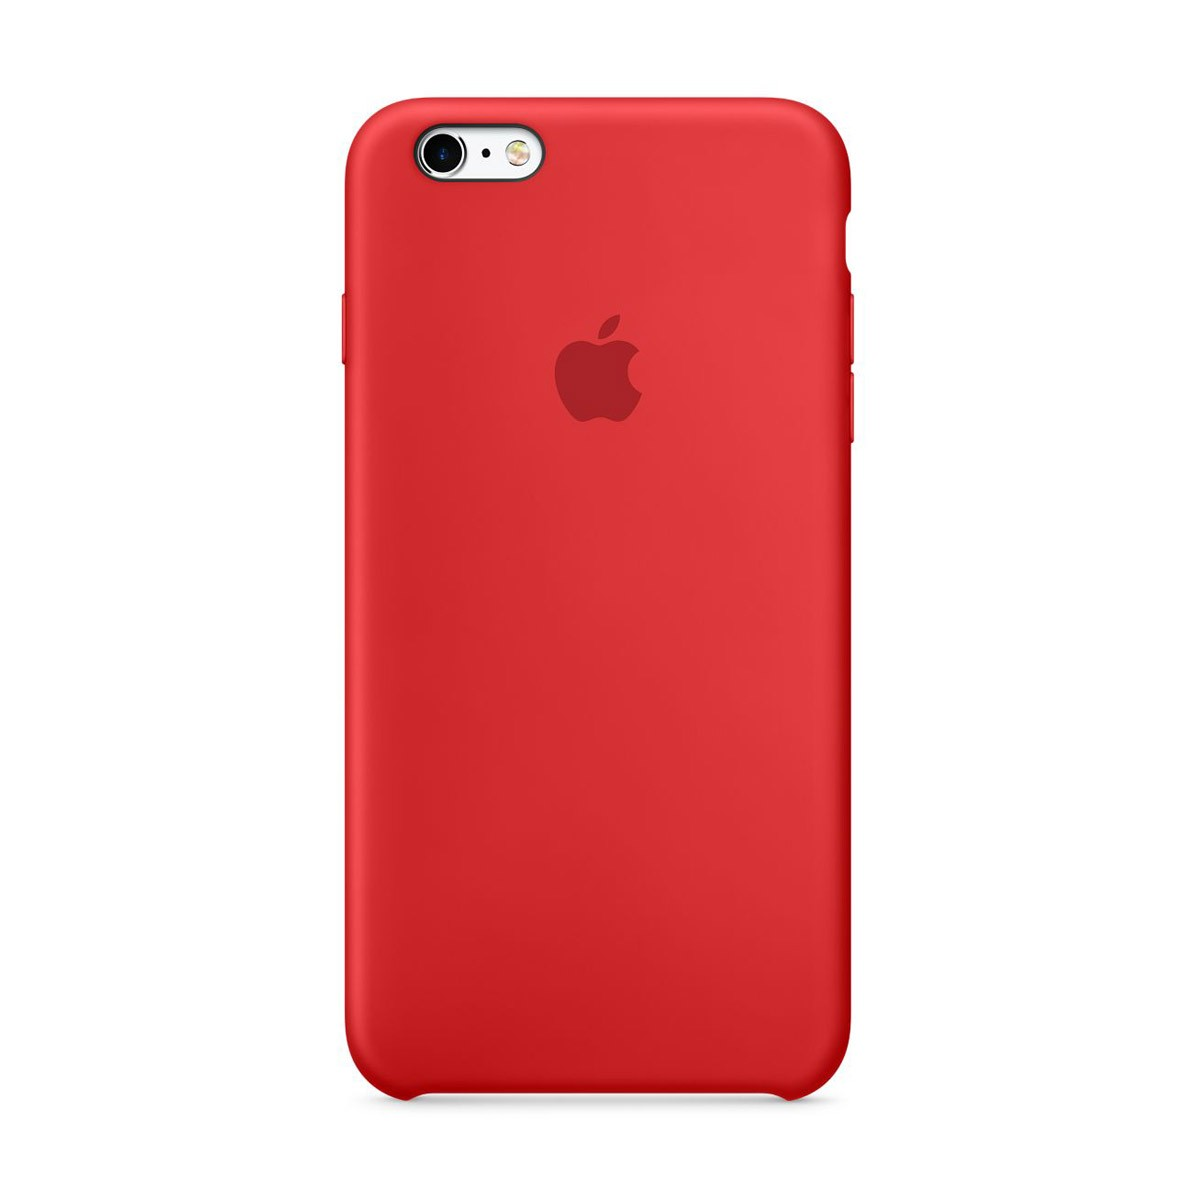 Apple silikonový kryt na iPhone 6s Plus - (PRODUCT)RED mkxm2zm/a